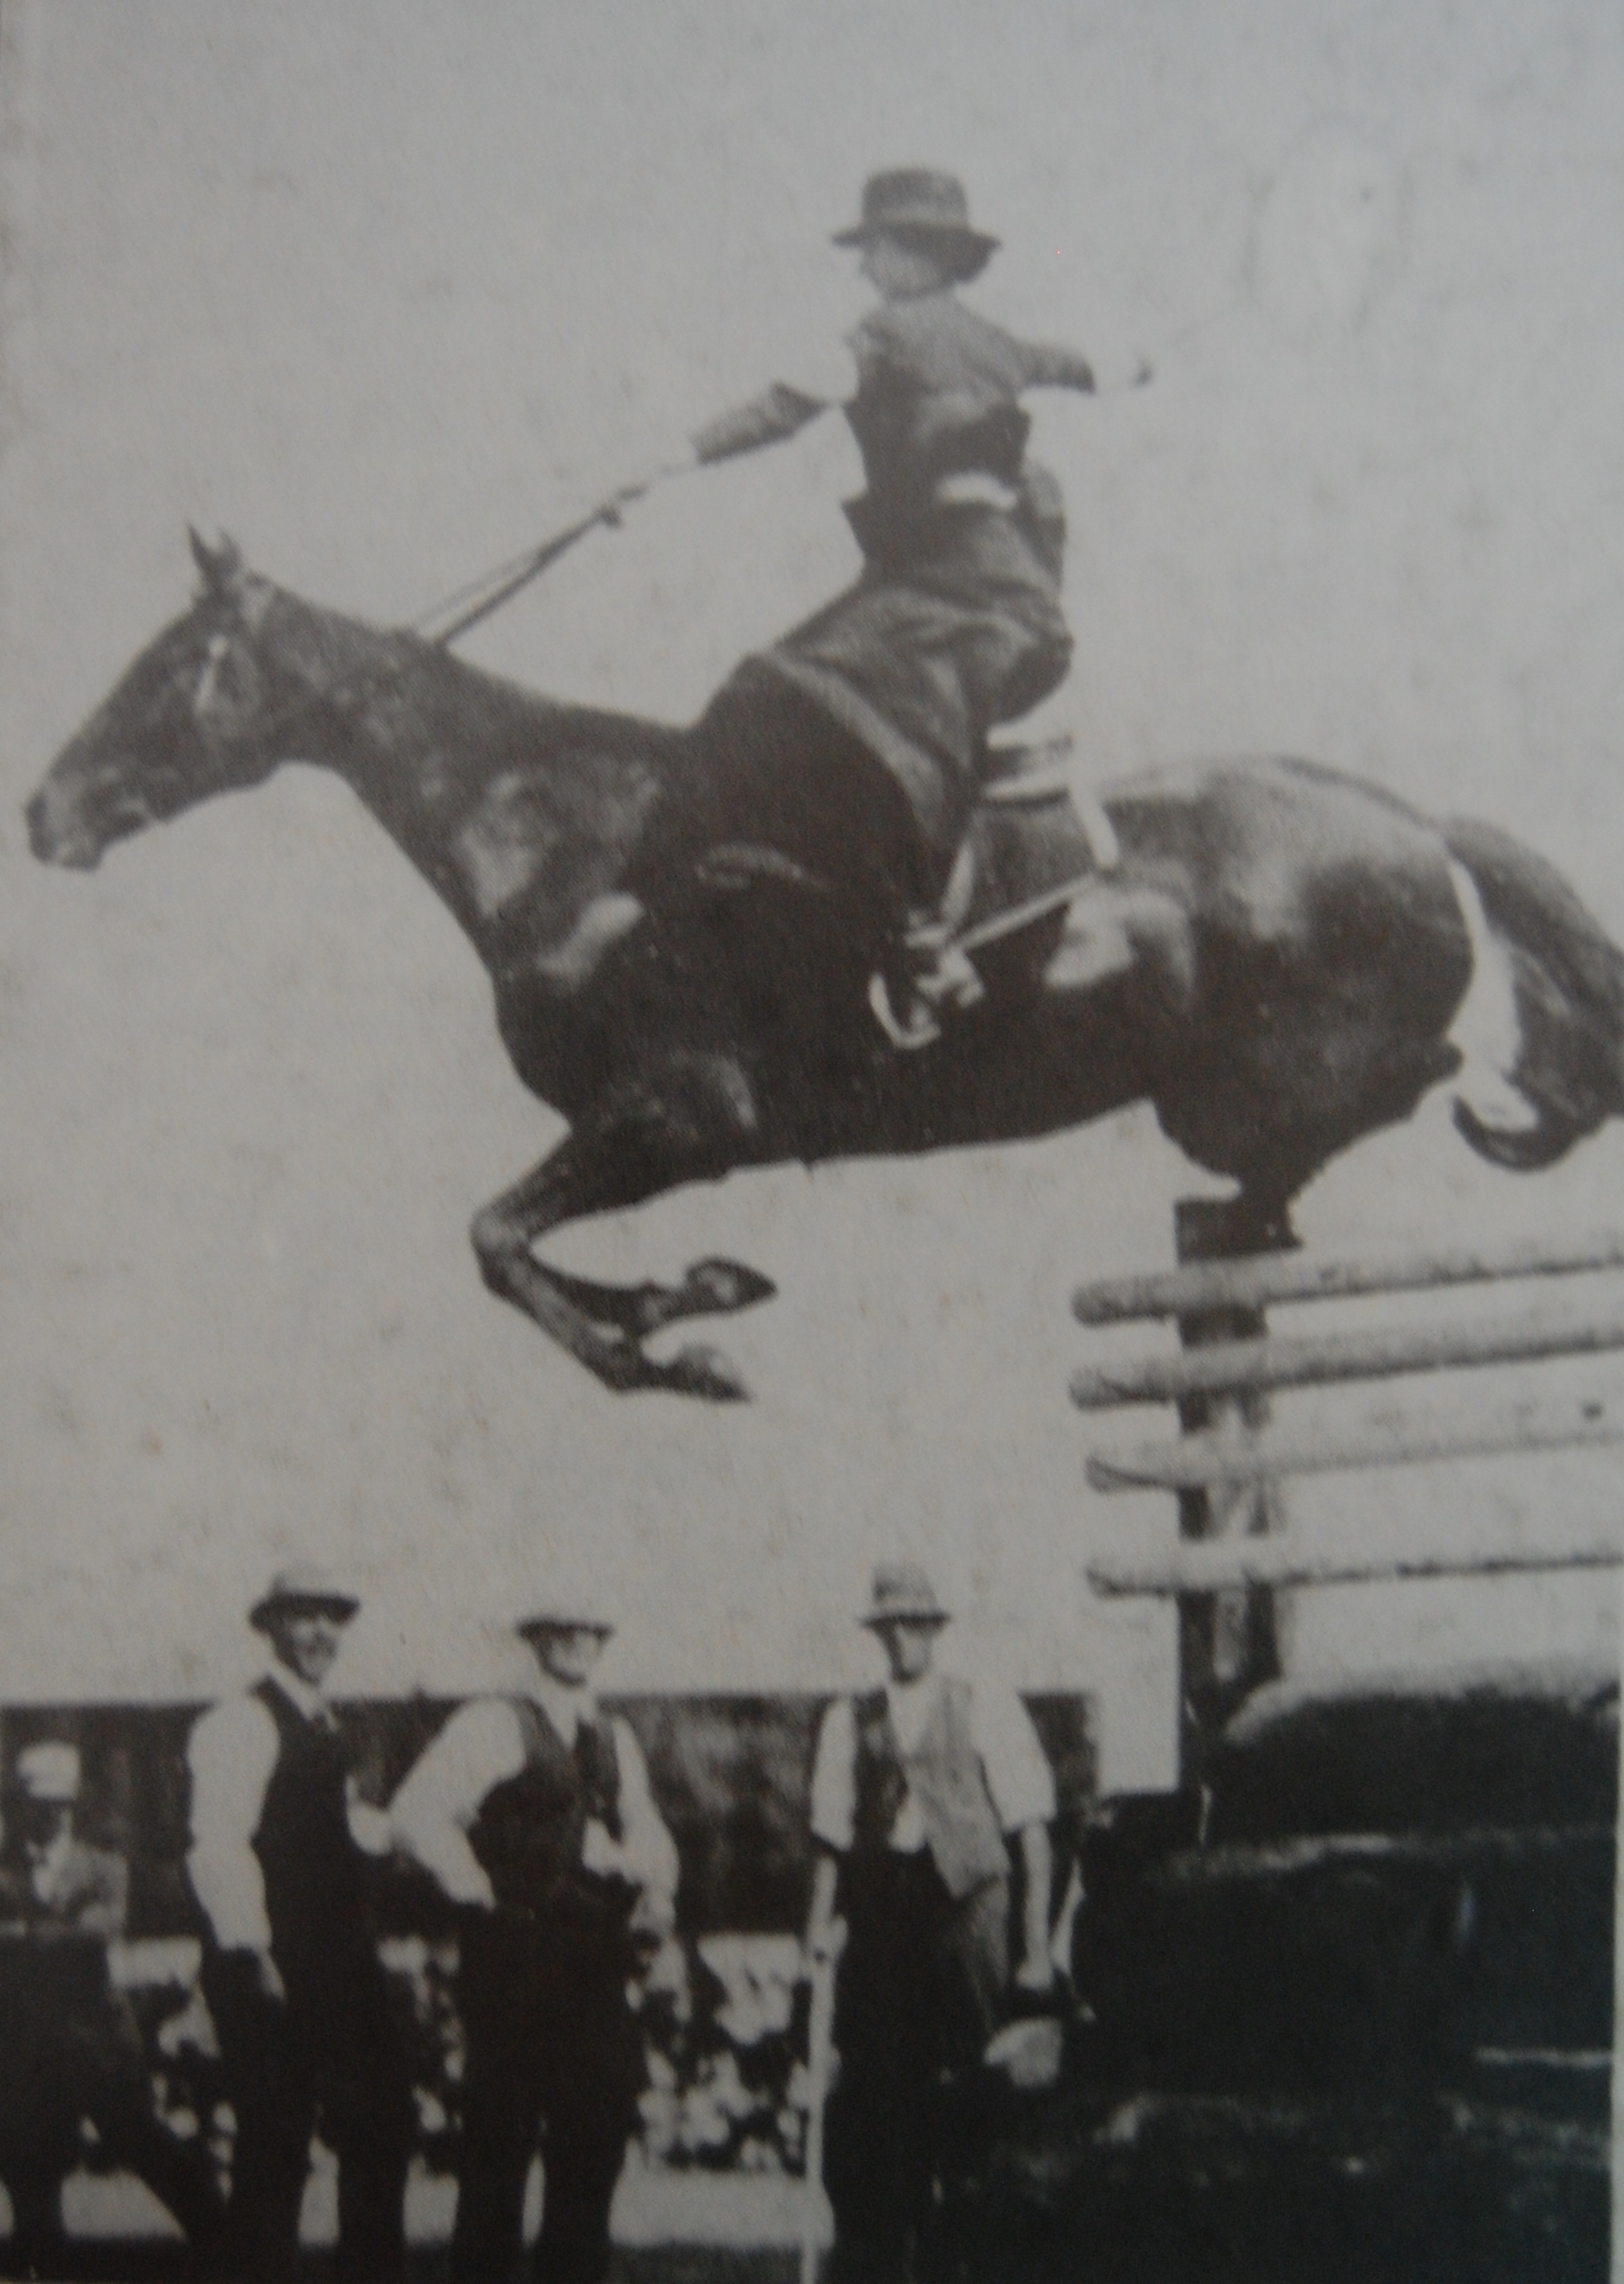 Emu Plains, ridden by Mrs Stace, champion Lady High Jump, 6ft. 6in., world record side saddle, set a